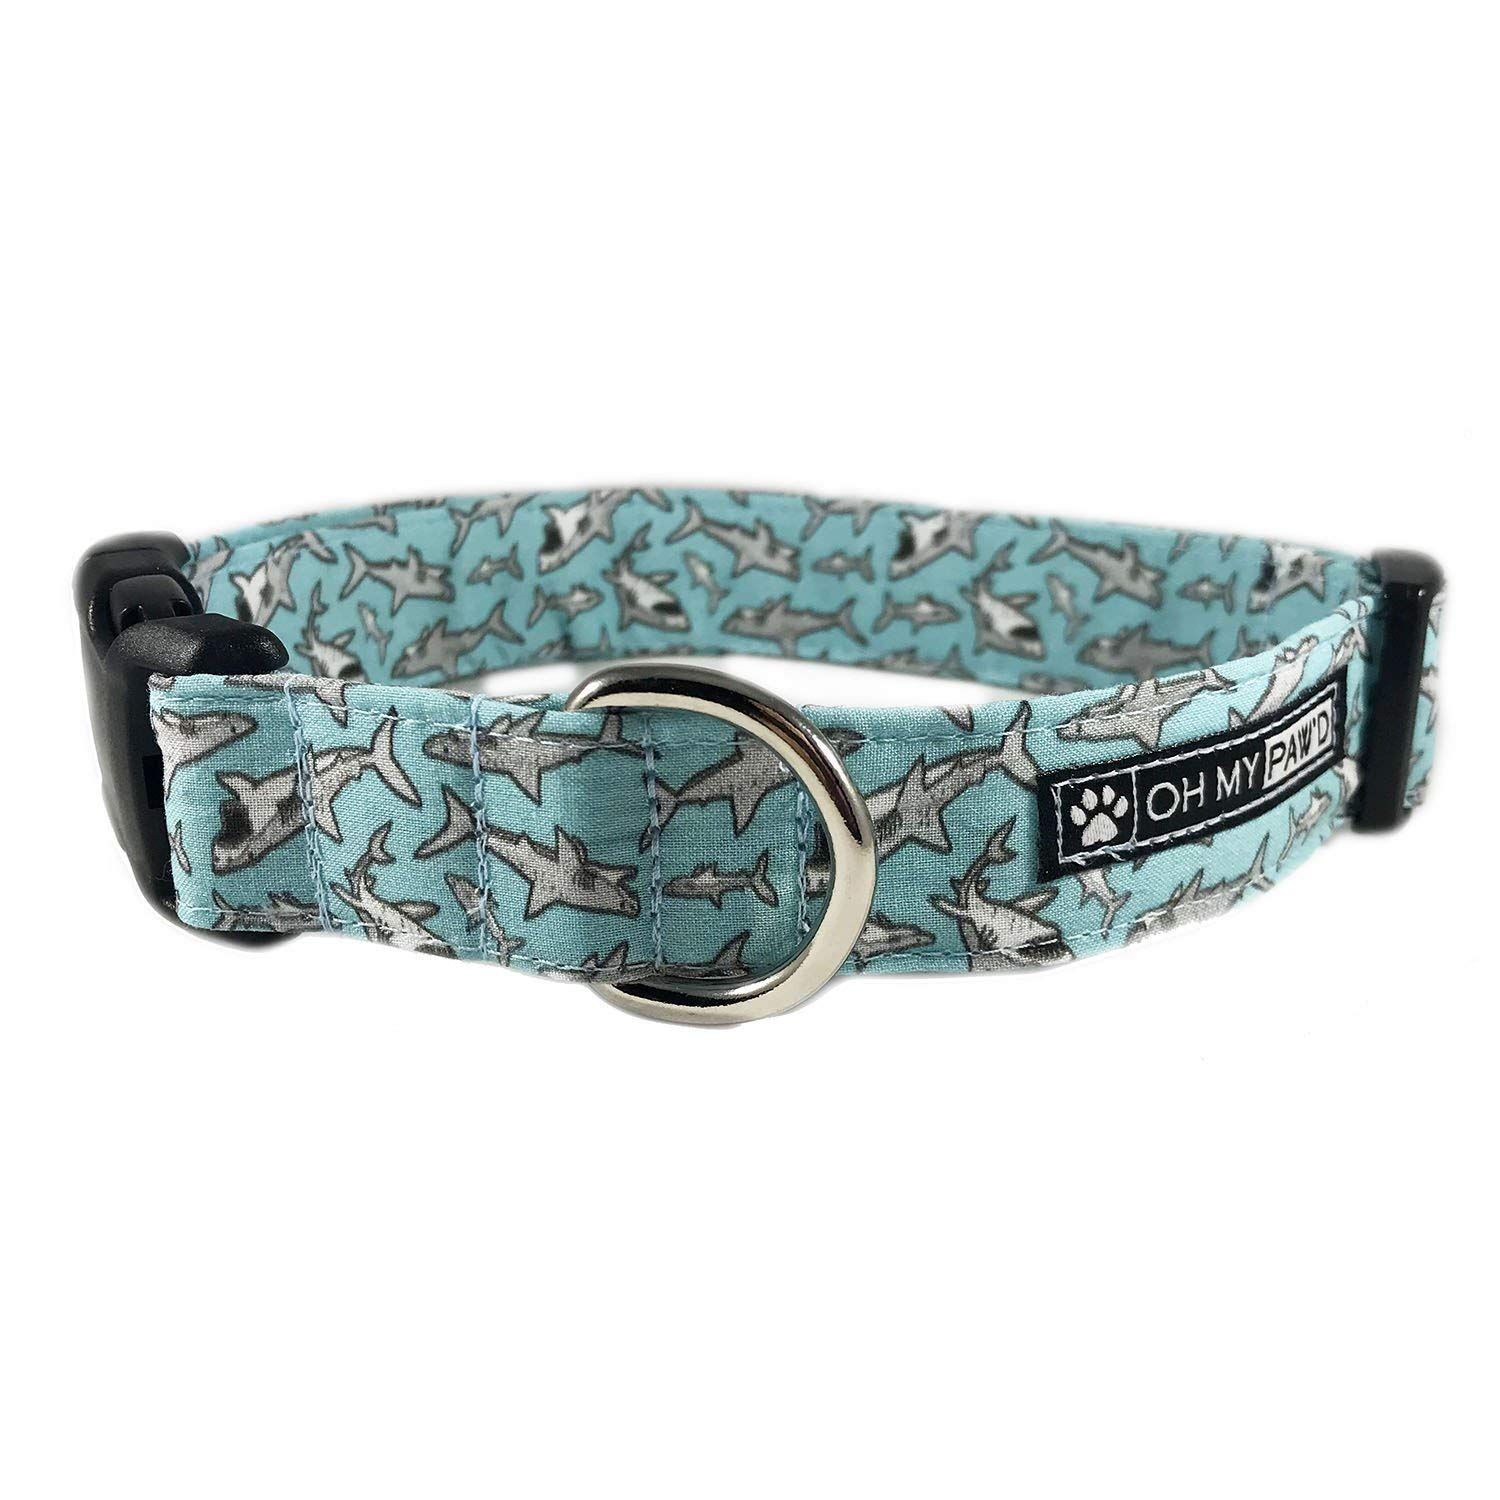 Shark Dog or Cat Collar for Pets Size Medium 3/4'' Wide and 13-17'' Long by Oh My Paw'd